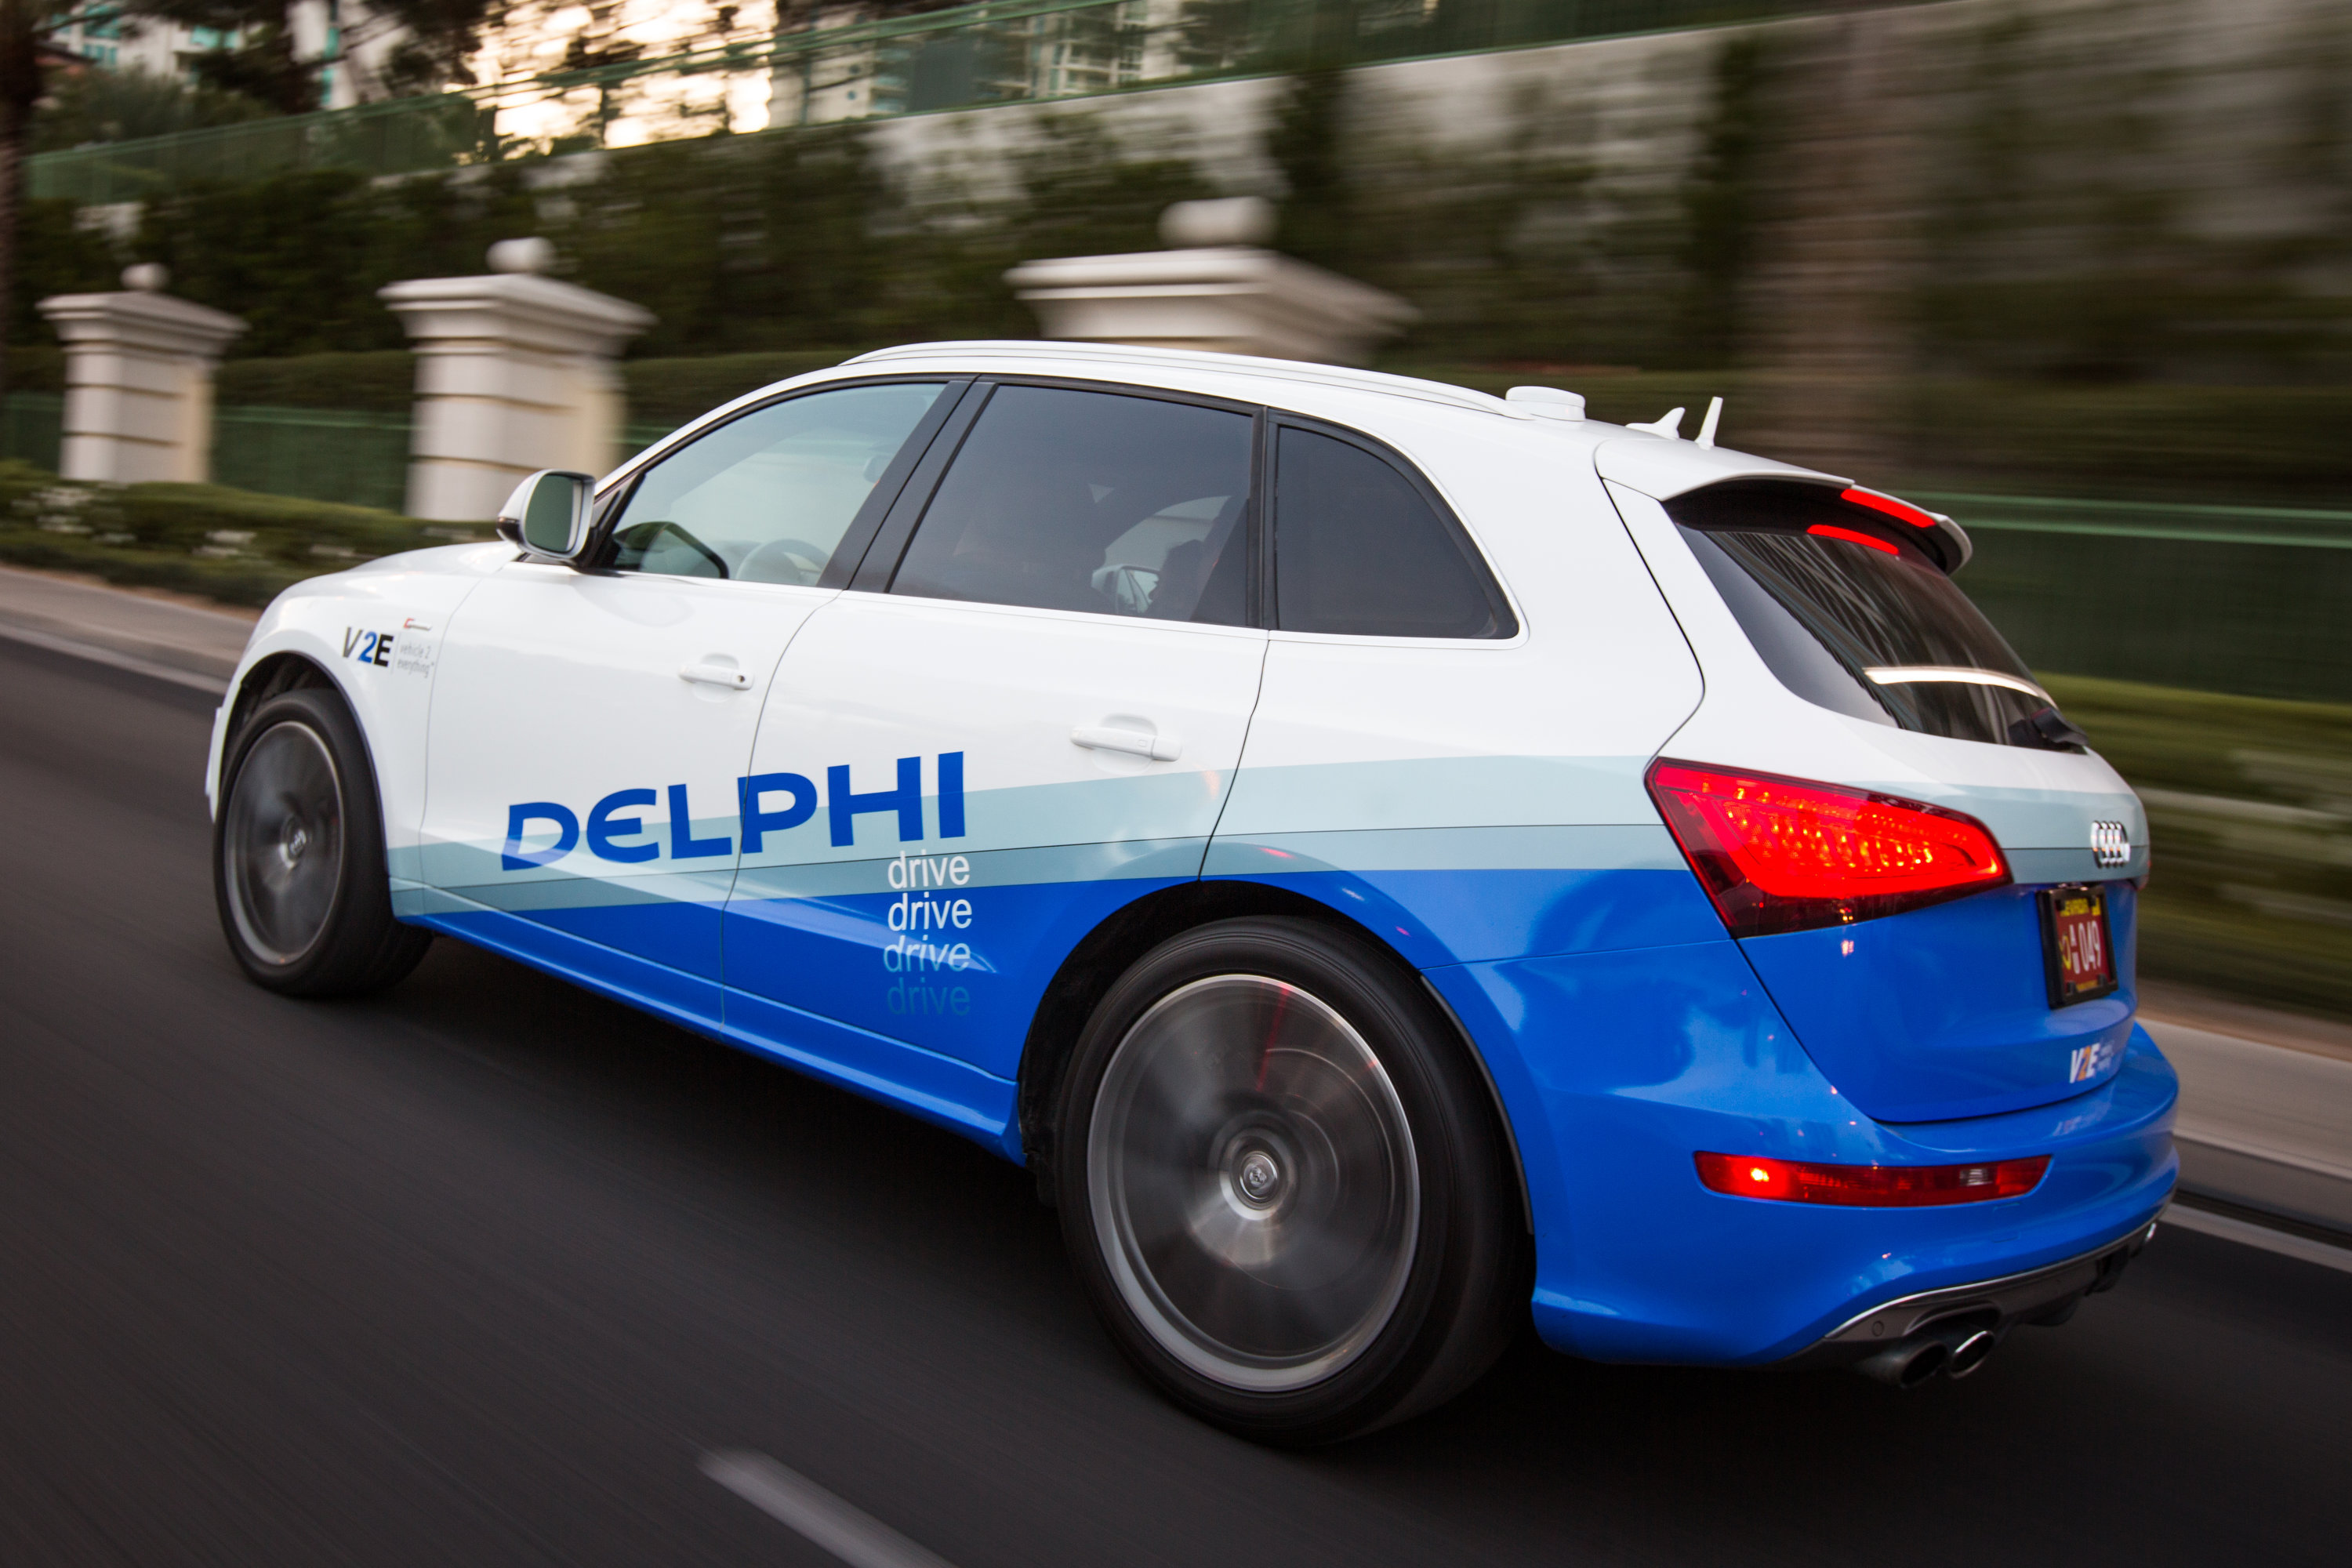 Delphi Advances Automated Vehicle Project At Ces Adds V2e Wiring Diagram Toyota Agya Last Year Delphis Car Drove Itself Across The Country In January